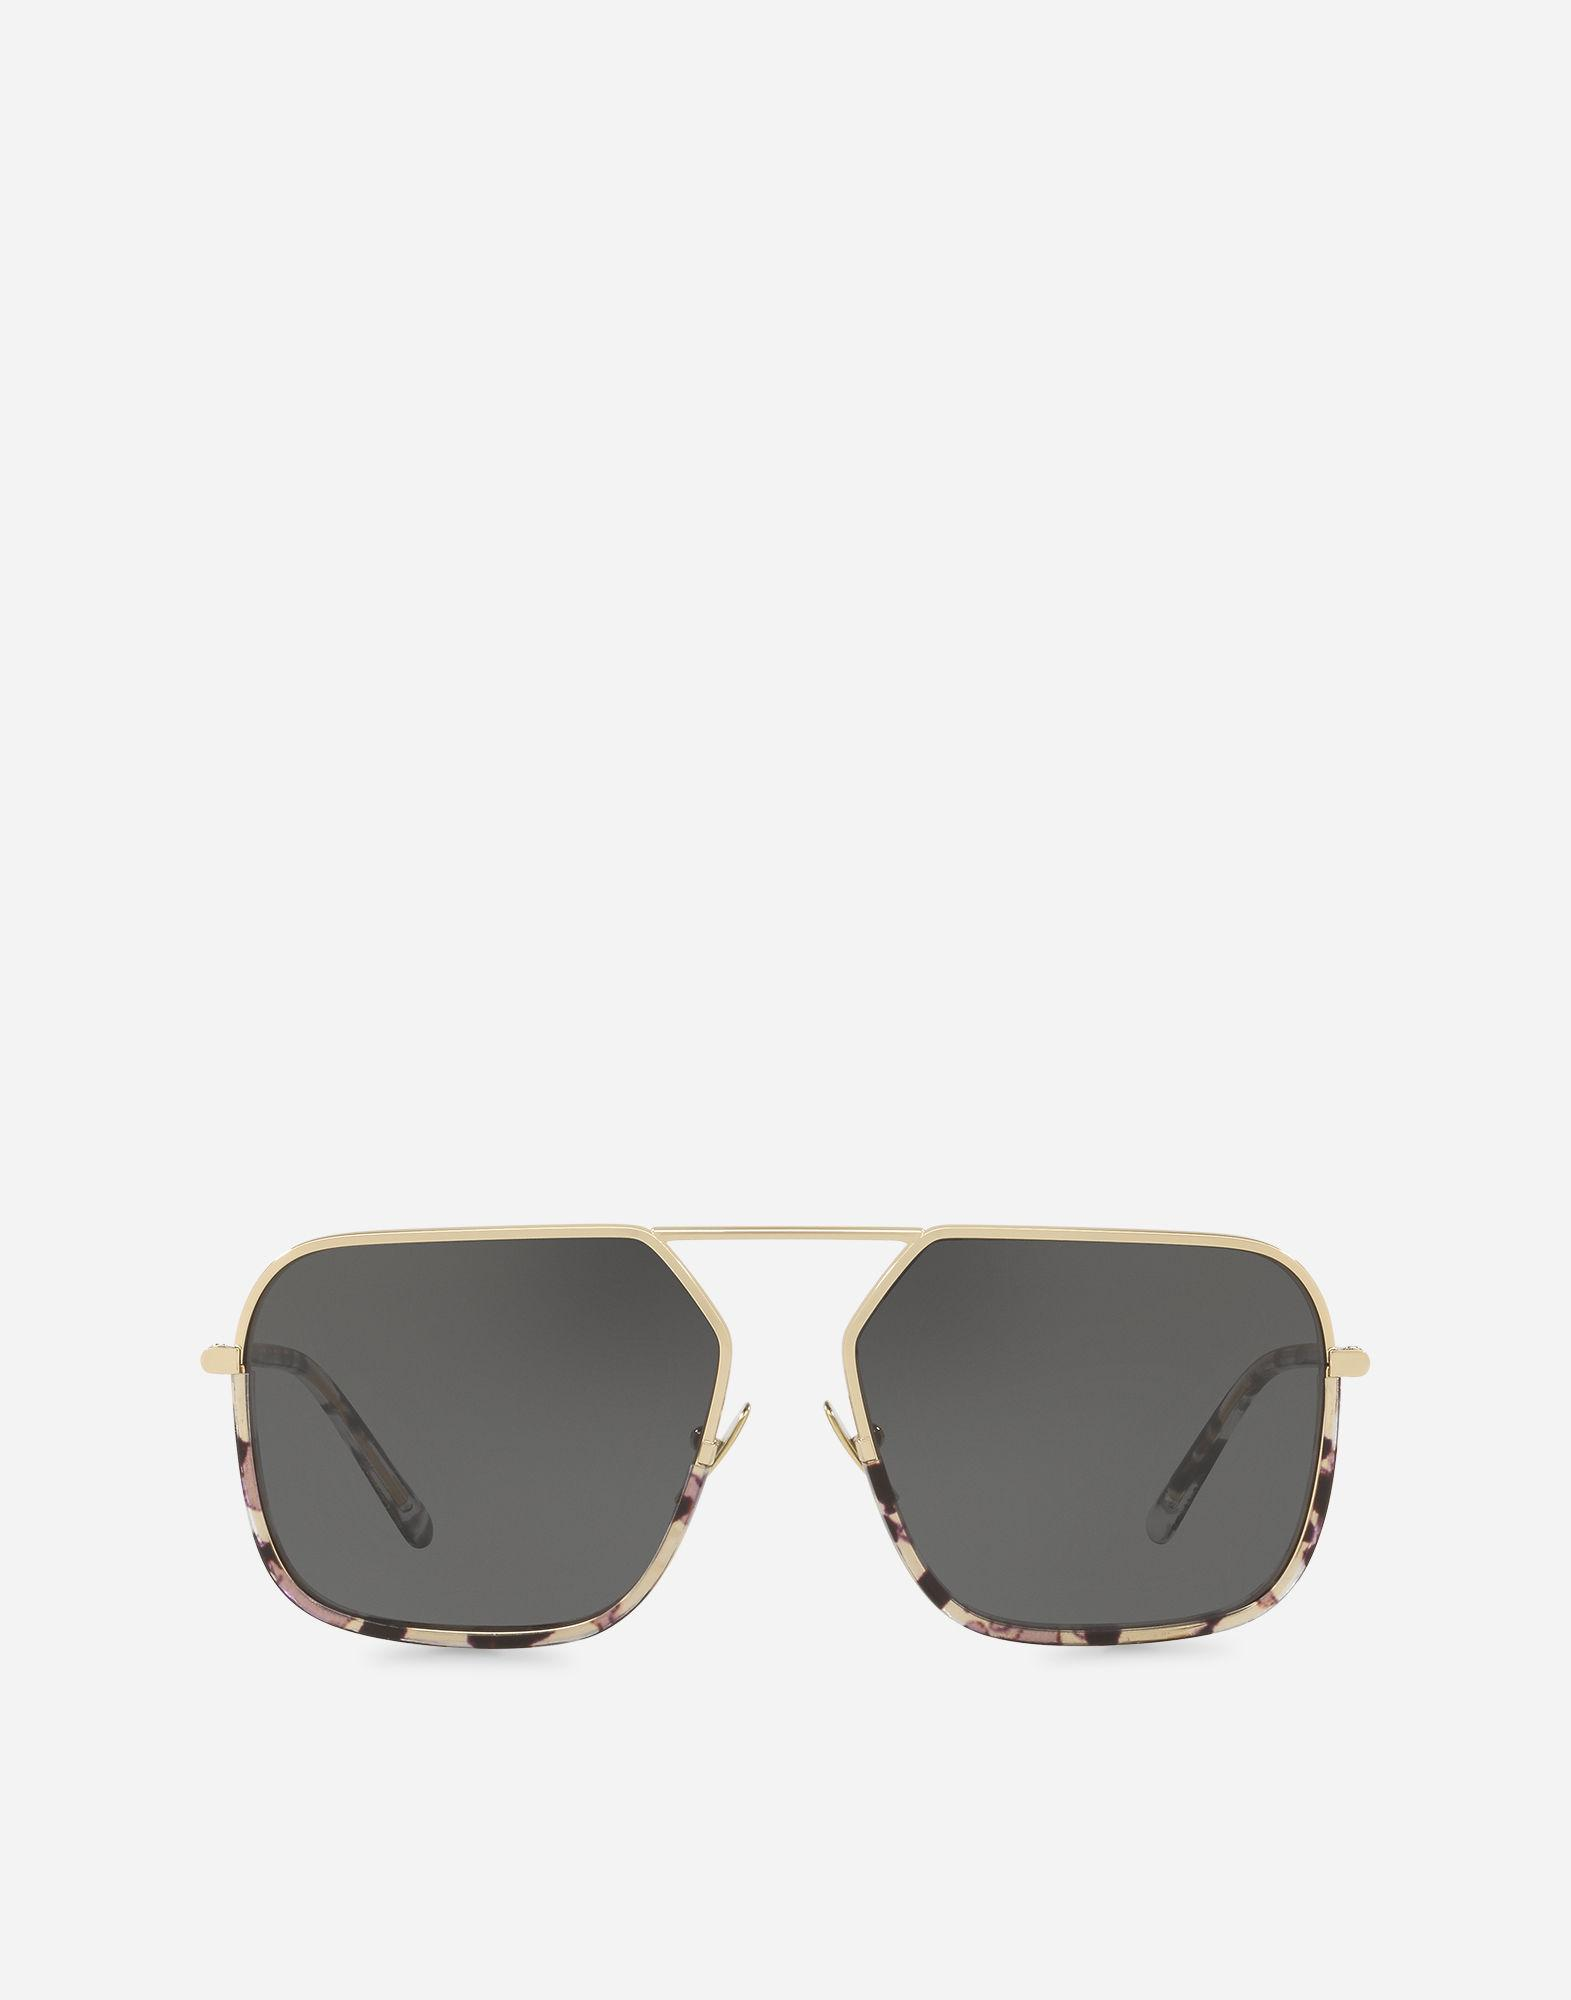 9769627643a Dolce   Gabbana Rectangular Sunglasses With Metal Bridge In Light Glossy  Gold With Havana Black And